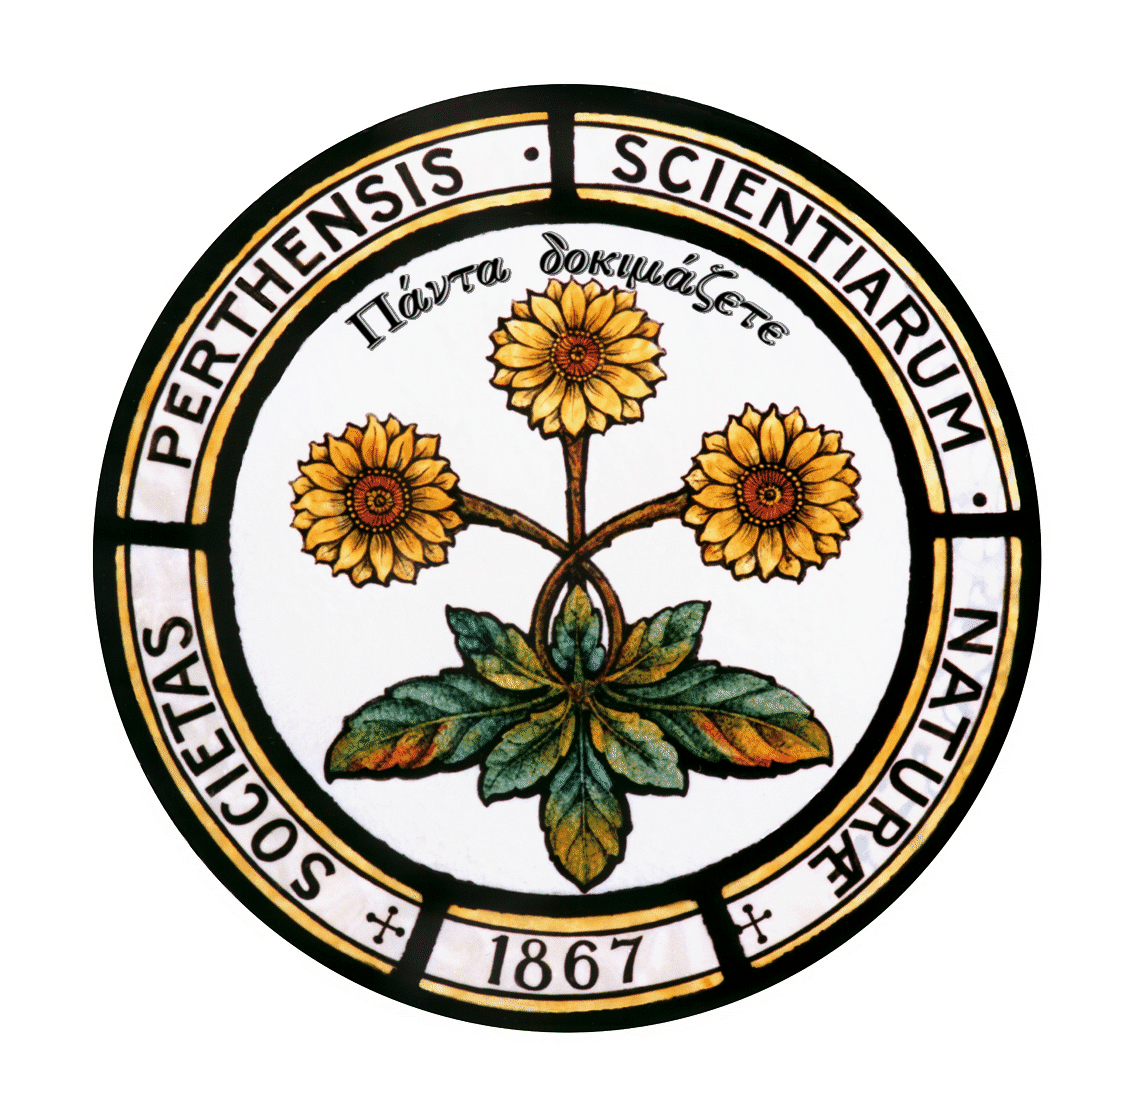 Perthshire Society of Natural Science